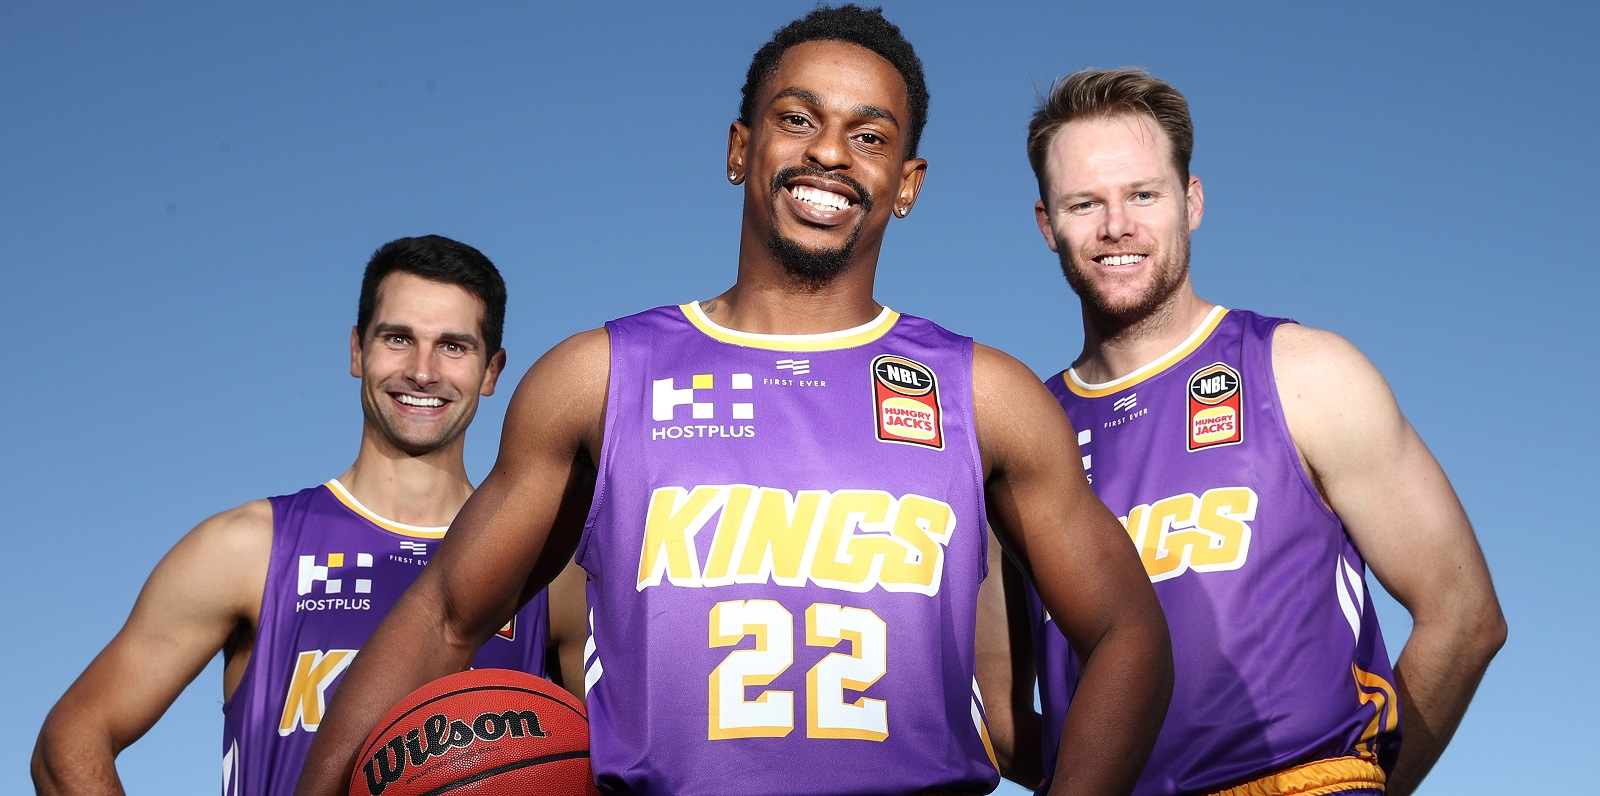 Sydney Kings players